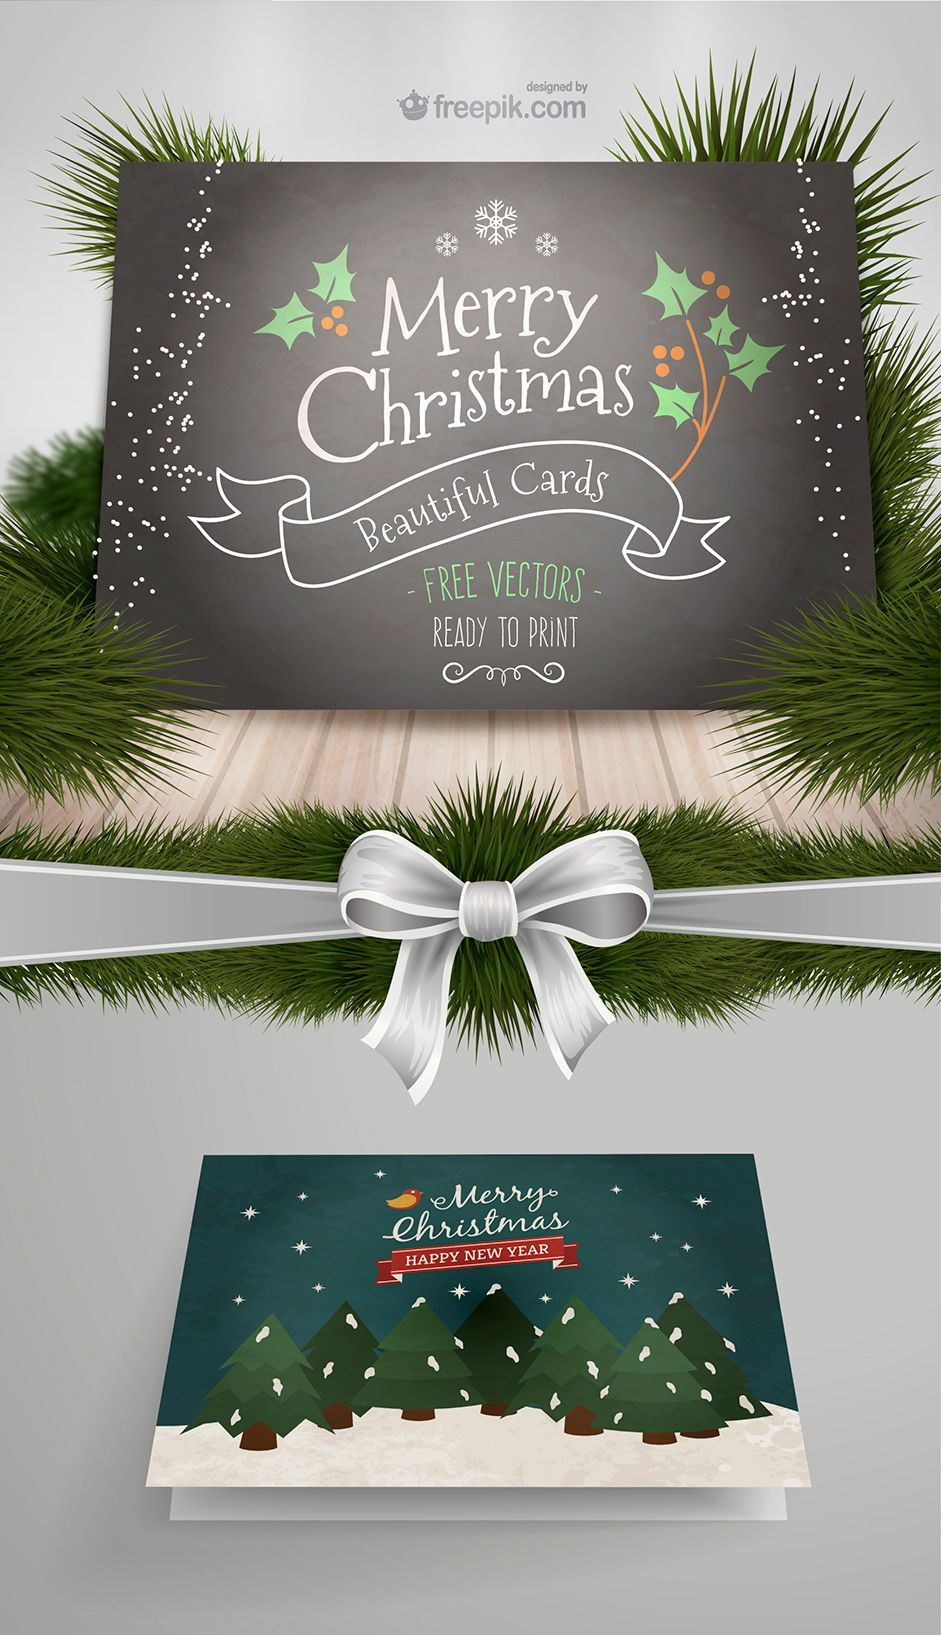 10 new xmas cards from freepik and more free resources for your freepik christmas cards stopboris Gallery